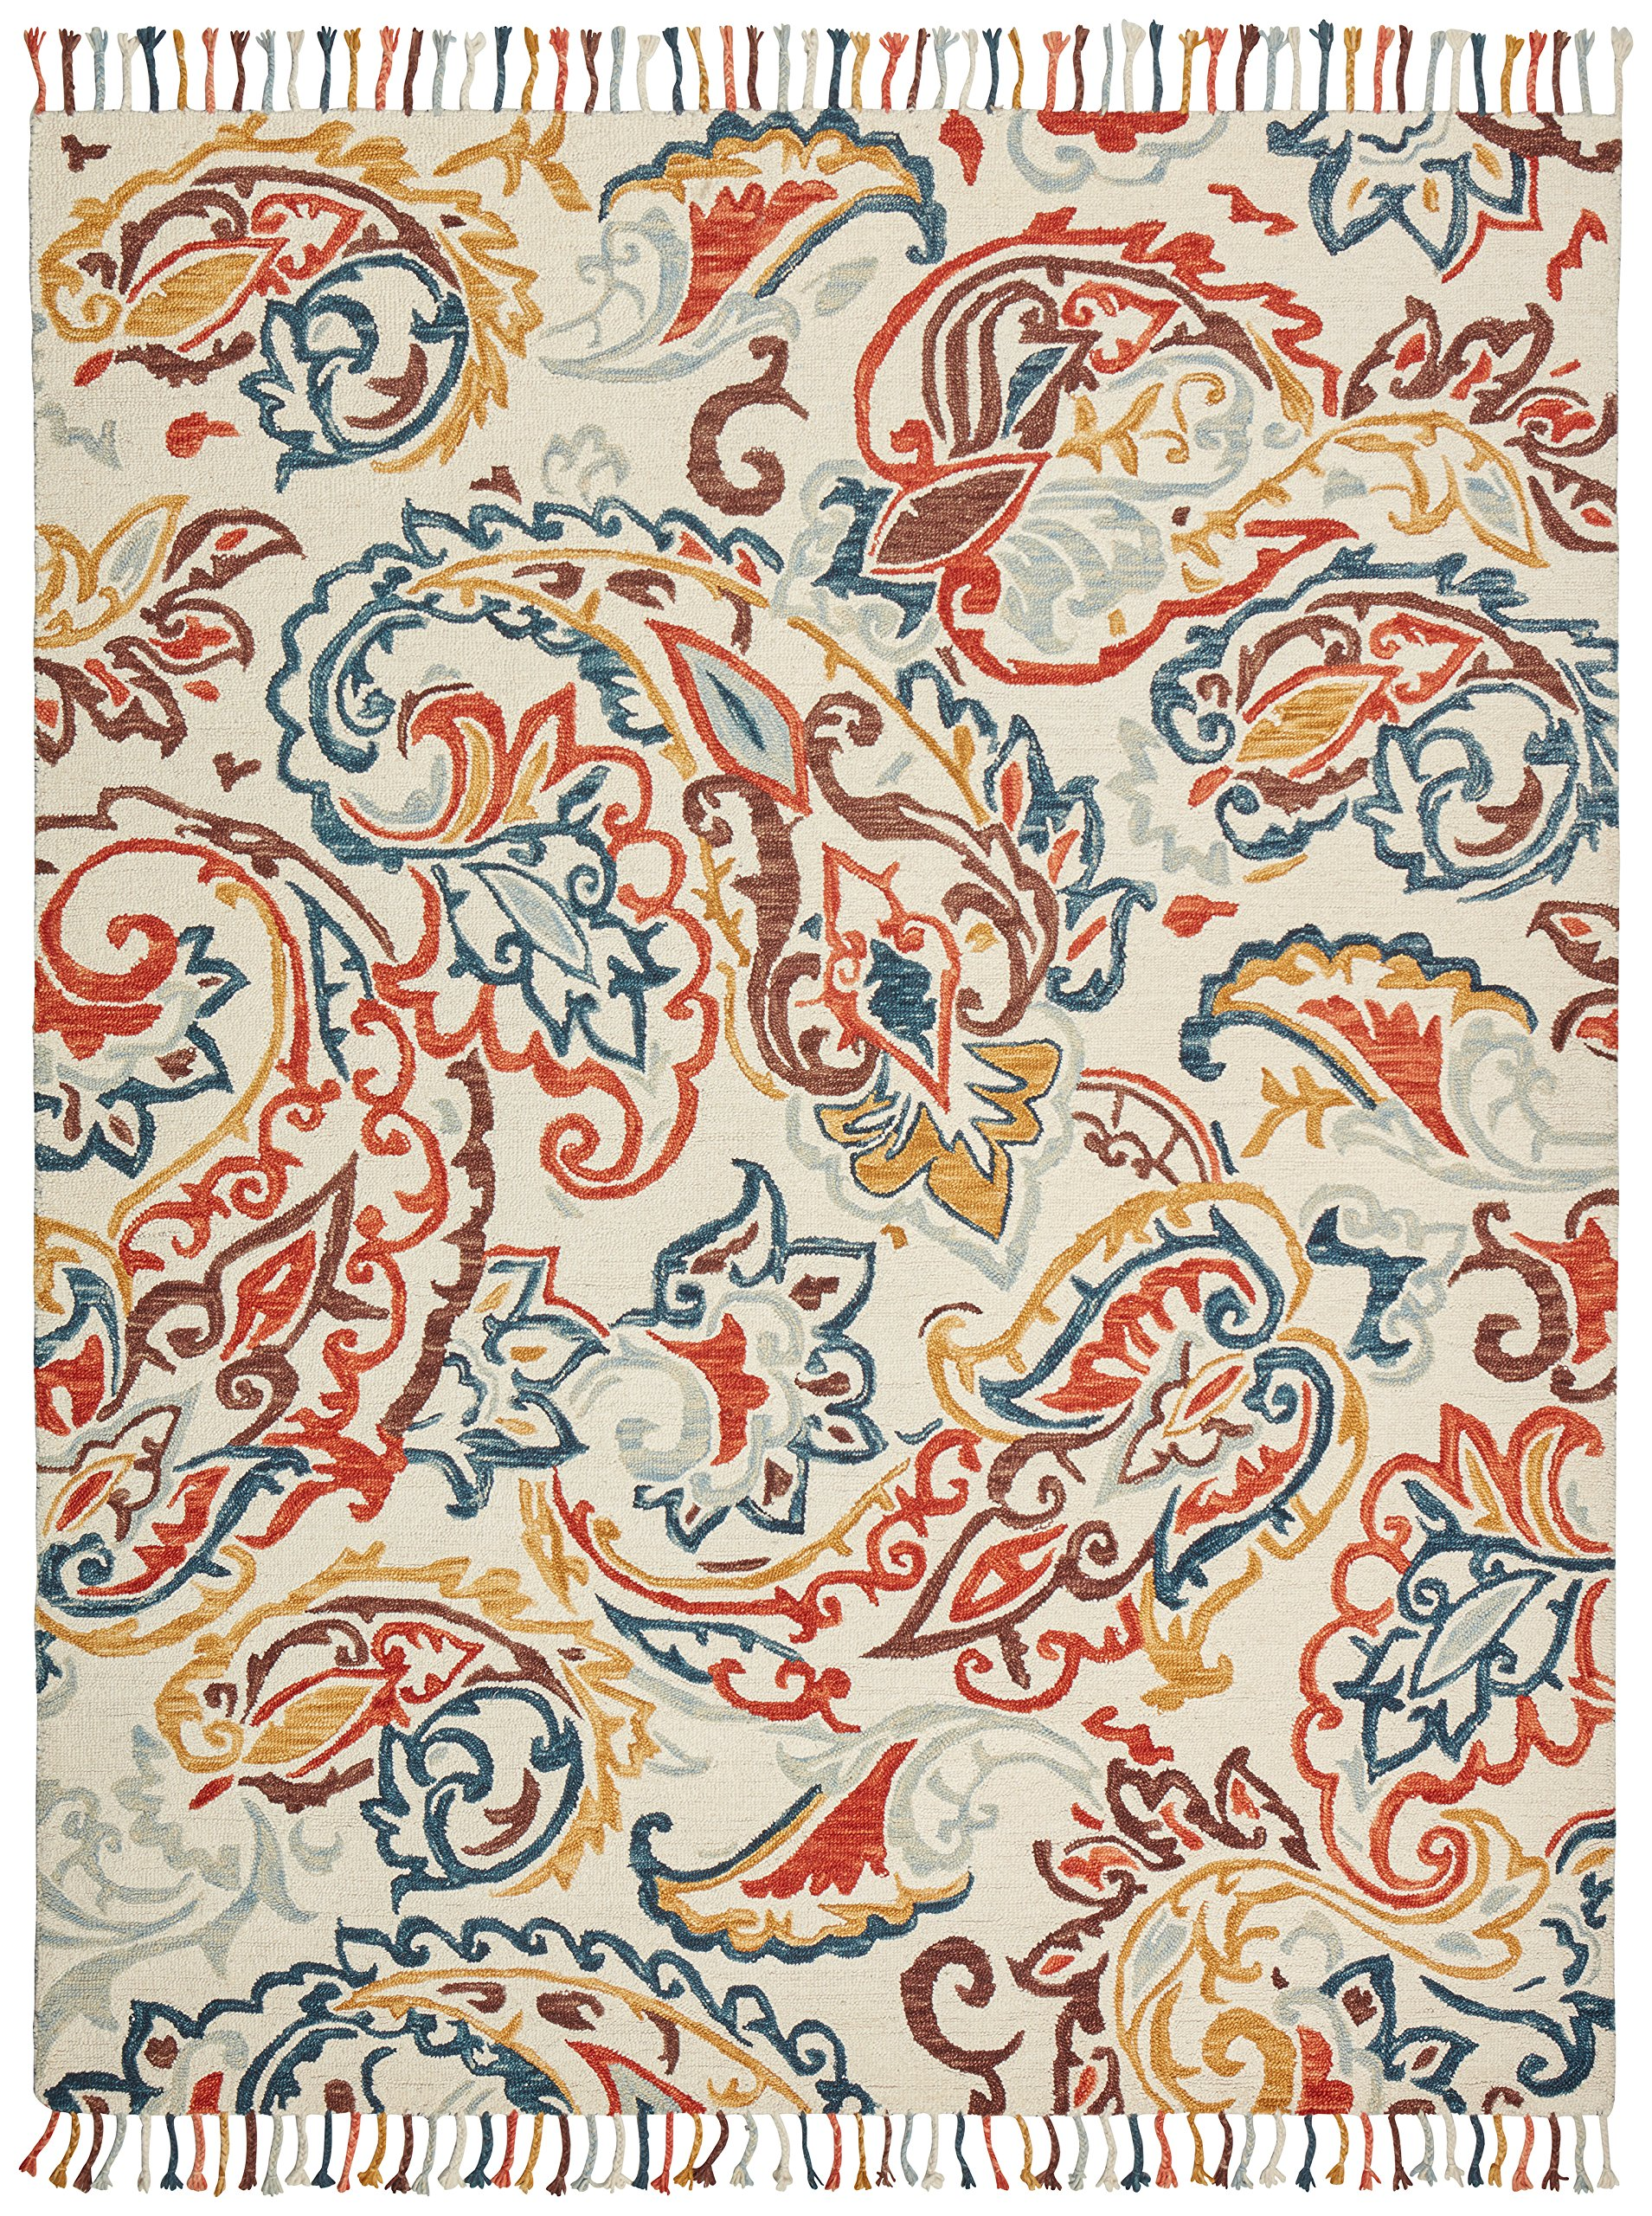 Stone & Beam Swirling Paisley Motif Wool Area Rug, 5' x 8', Multi by Stone & Beam